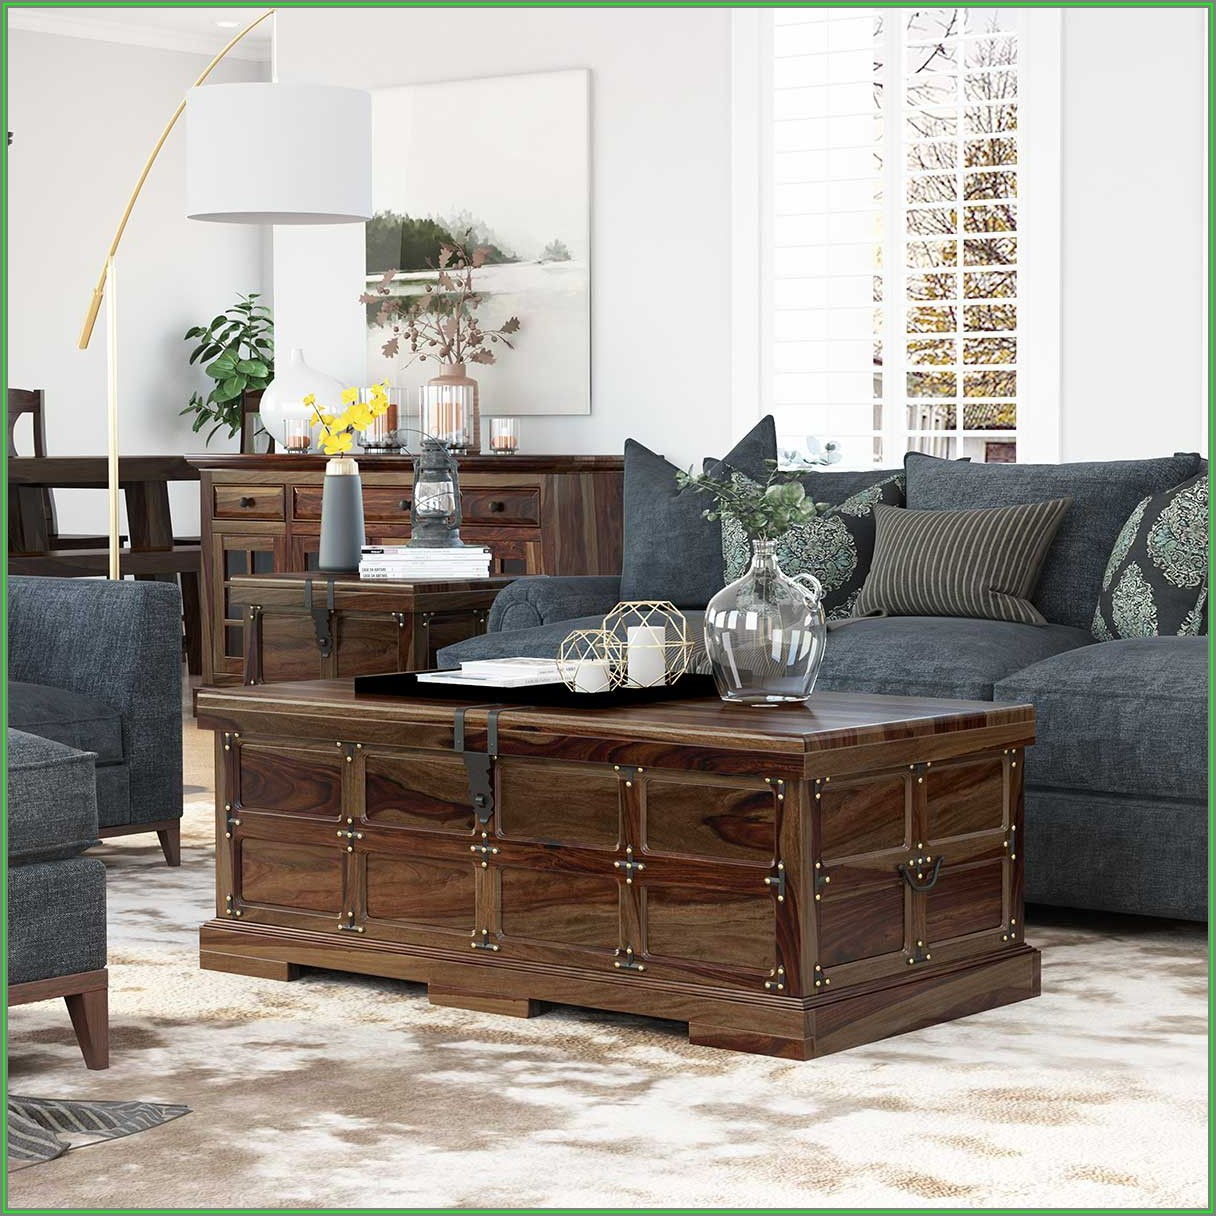 Rustic Storage Trunk Coffee Table